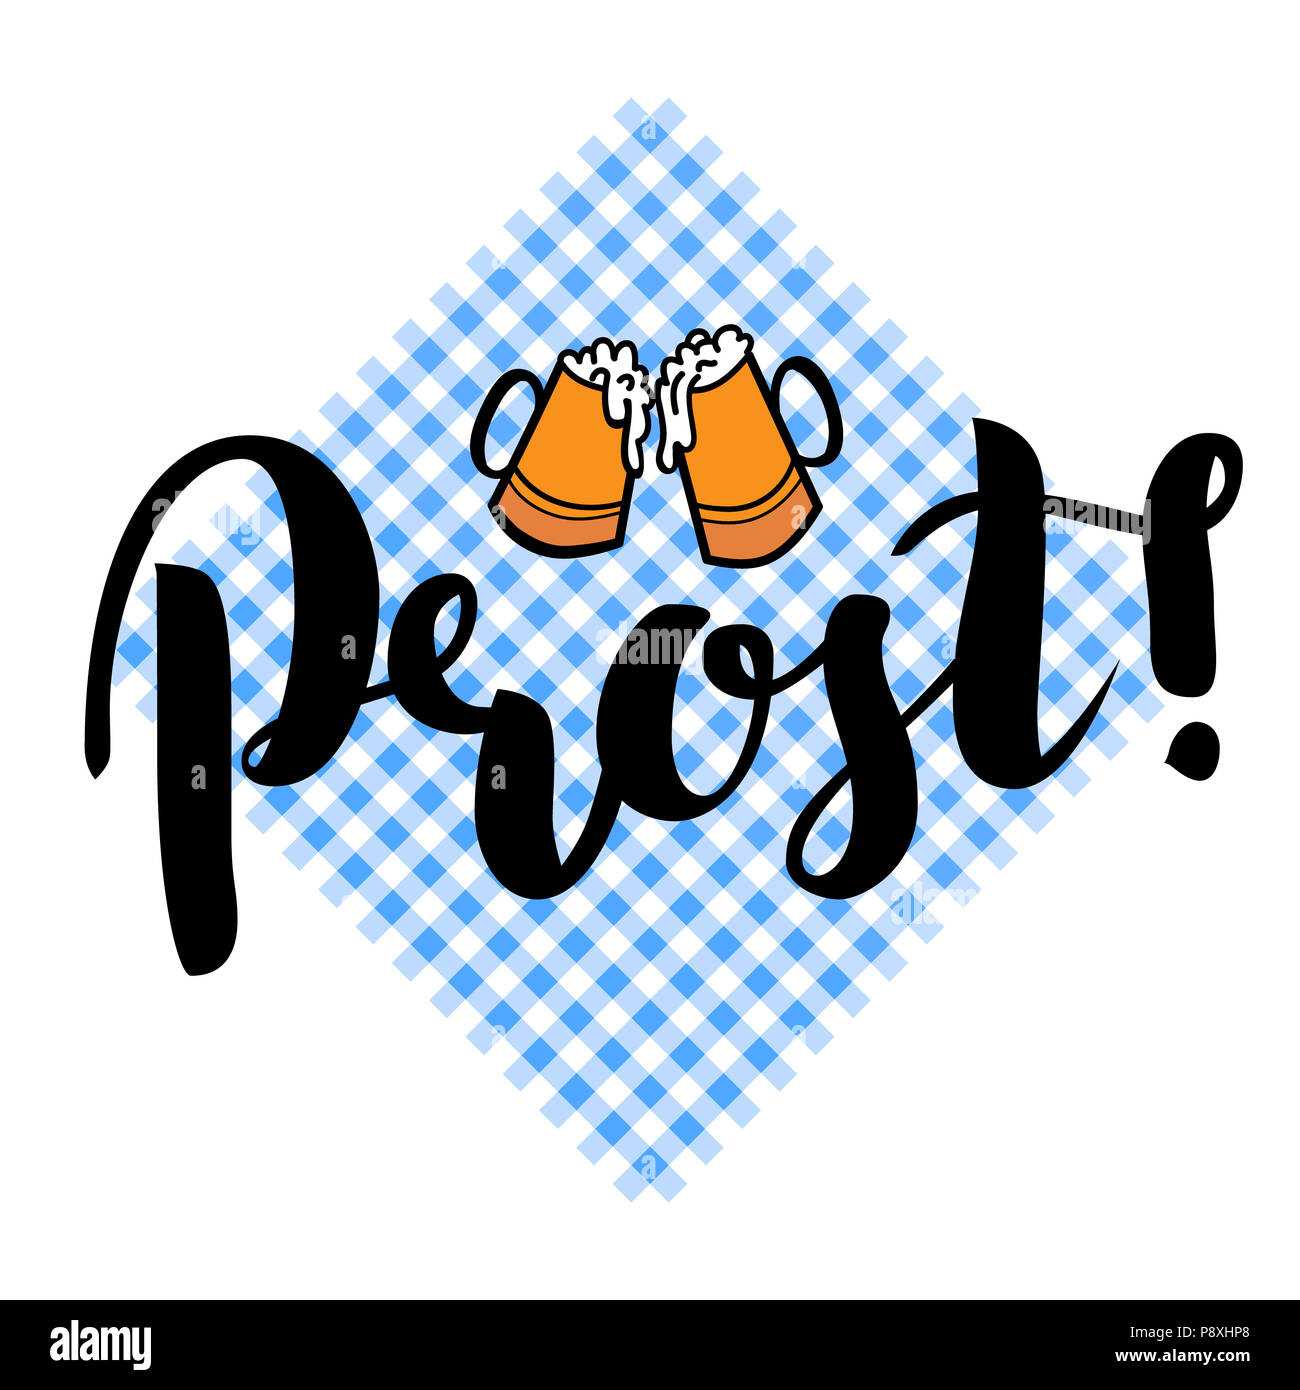 Traditional German Oktoberfest bier festival with text Prost Cheers and two biers.  lettering illustration isolated on white - Stock Image